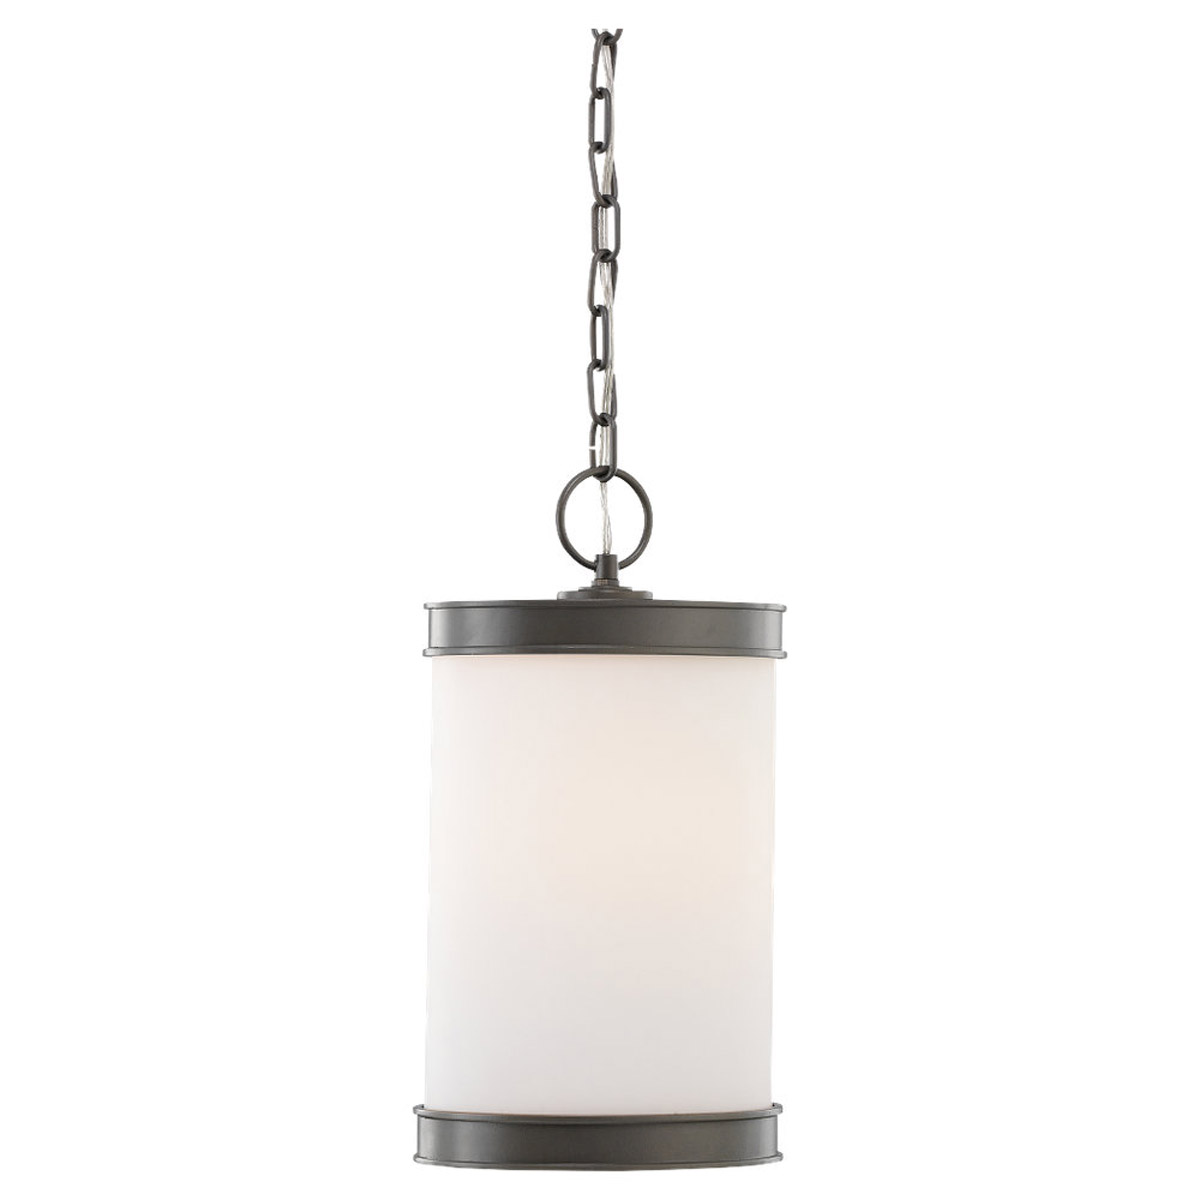 Sea Gull Lighting Amsterdam 1 Light Outdoor Pendant in Rustic Pewter 60885-850